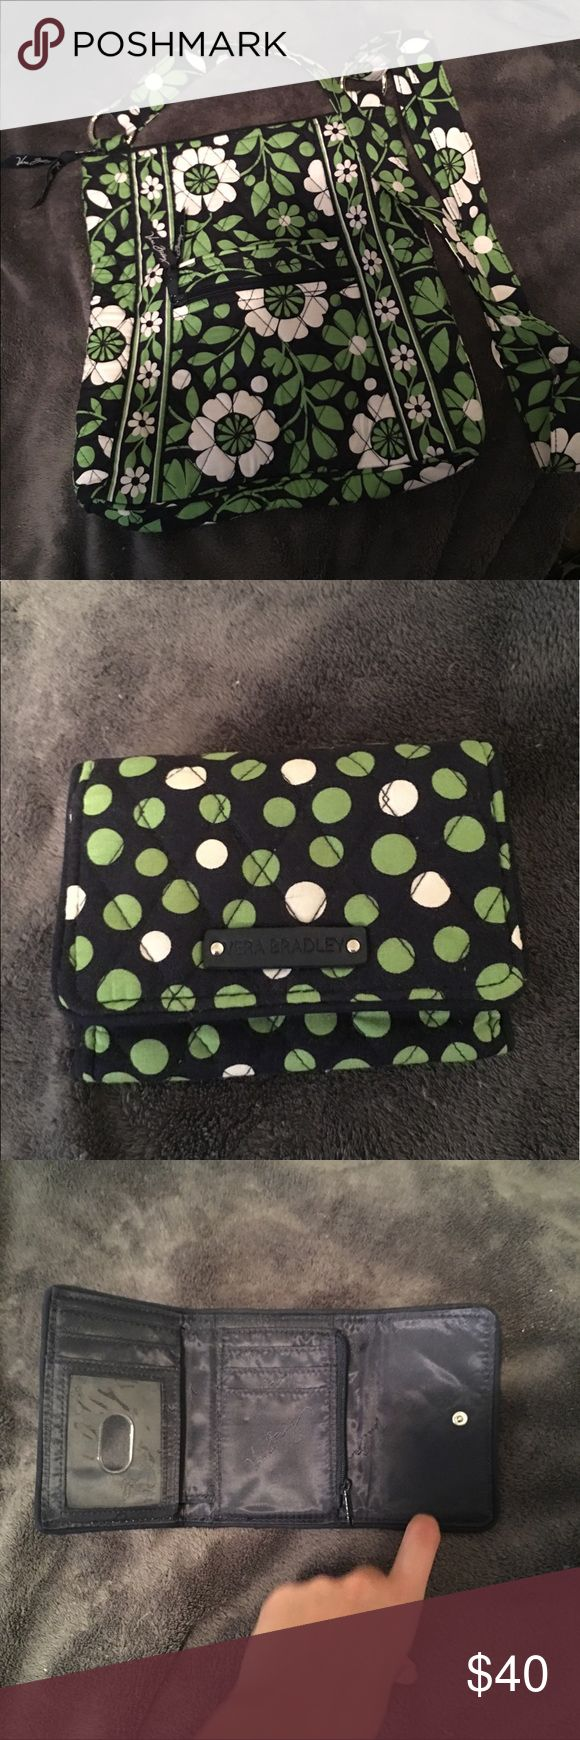 Vera Bradley Set Vera Bradley hipster and matching wallet! Perfect condition! No stains. Great for travel! Print is retired and called Lucky you. Vera Bradley Bags Crossbody Bags